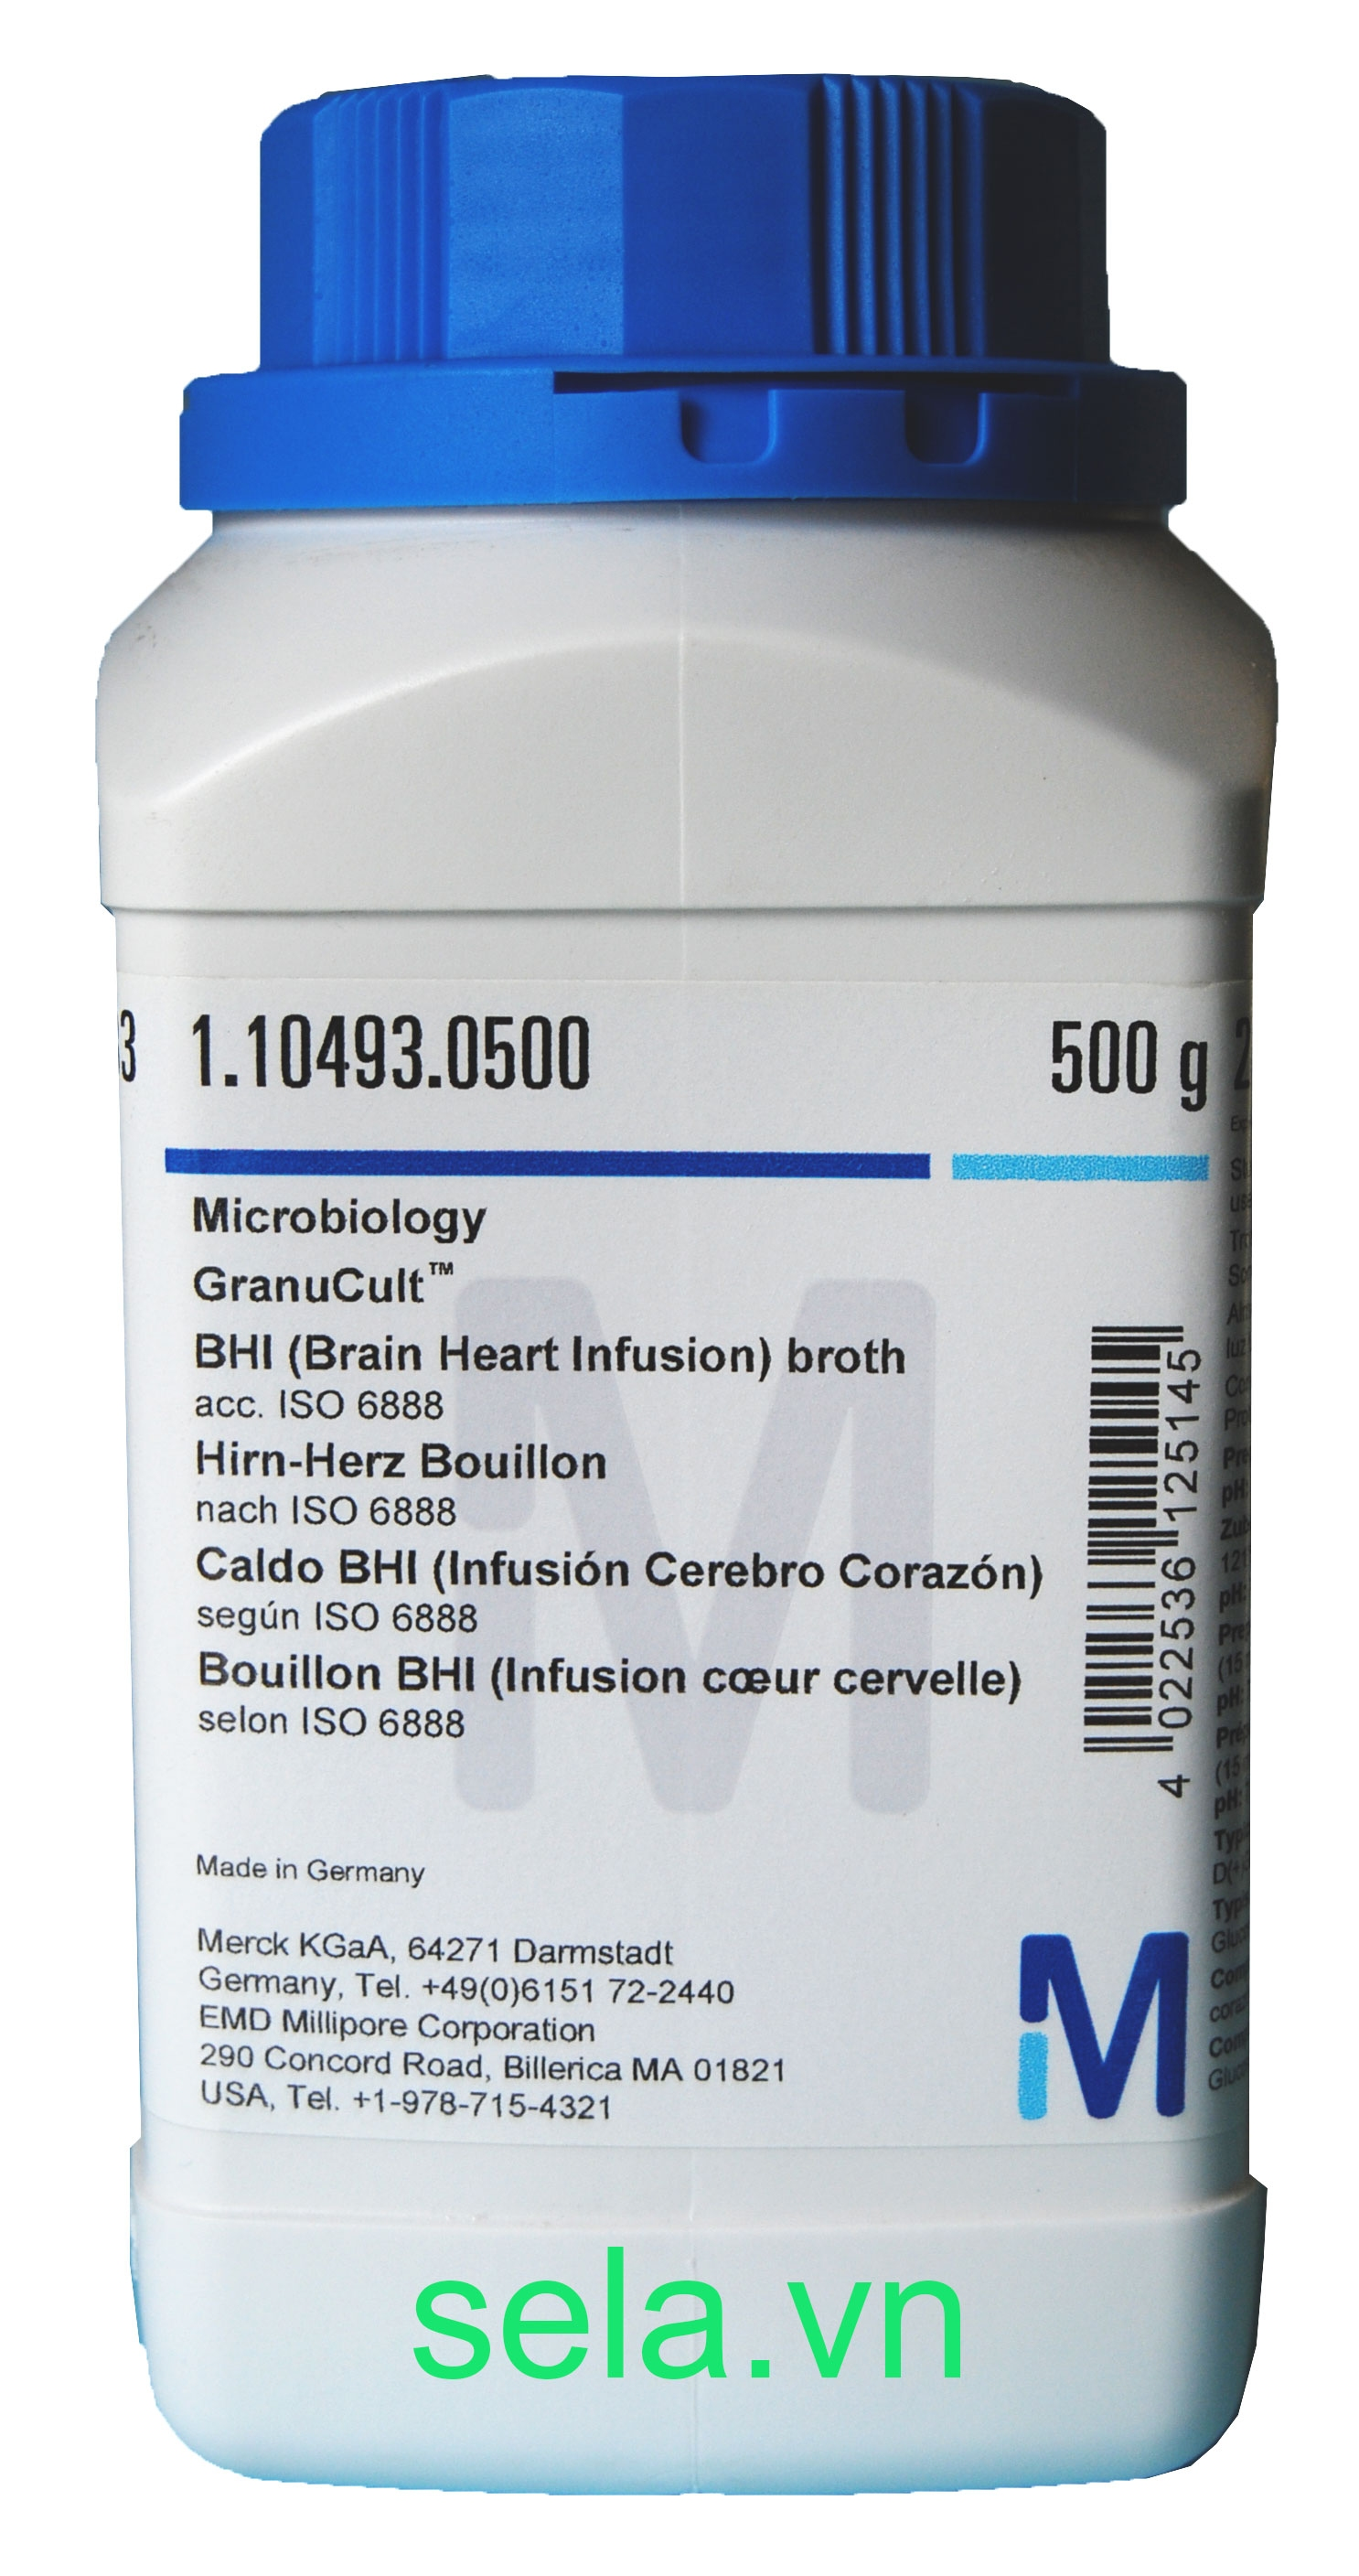 BHI (Brain Heart Infusion) broth acc. ISO 6888 GranuCult™